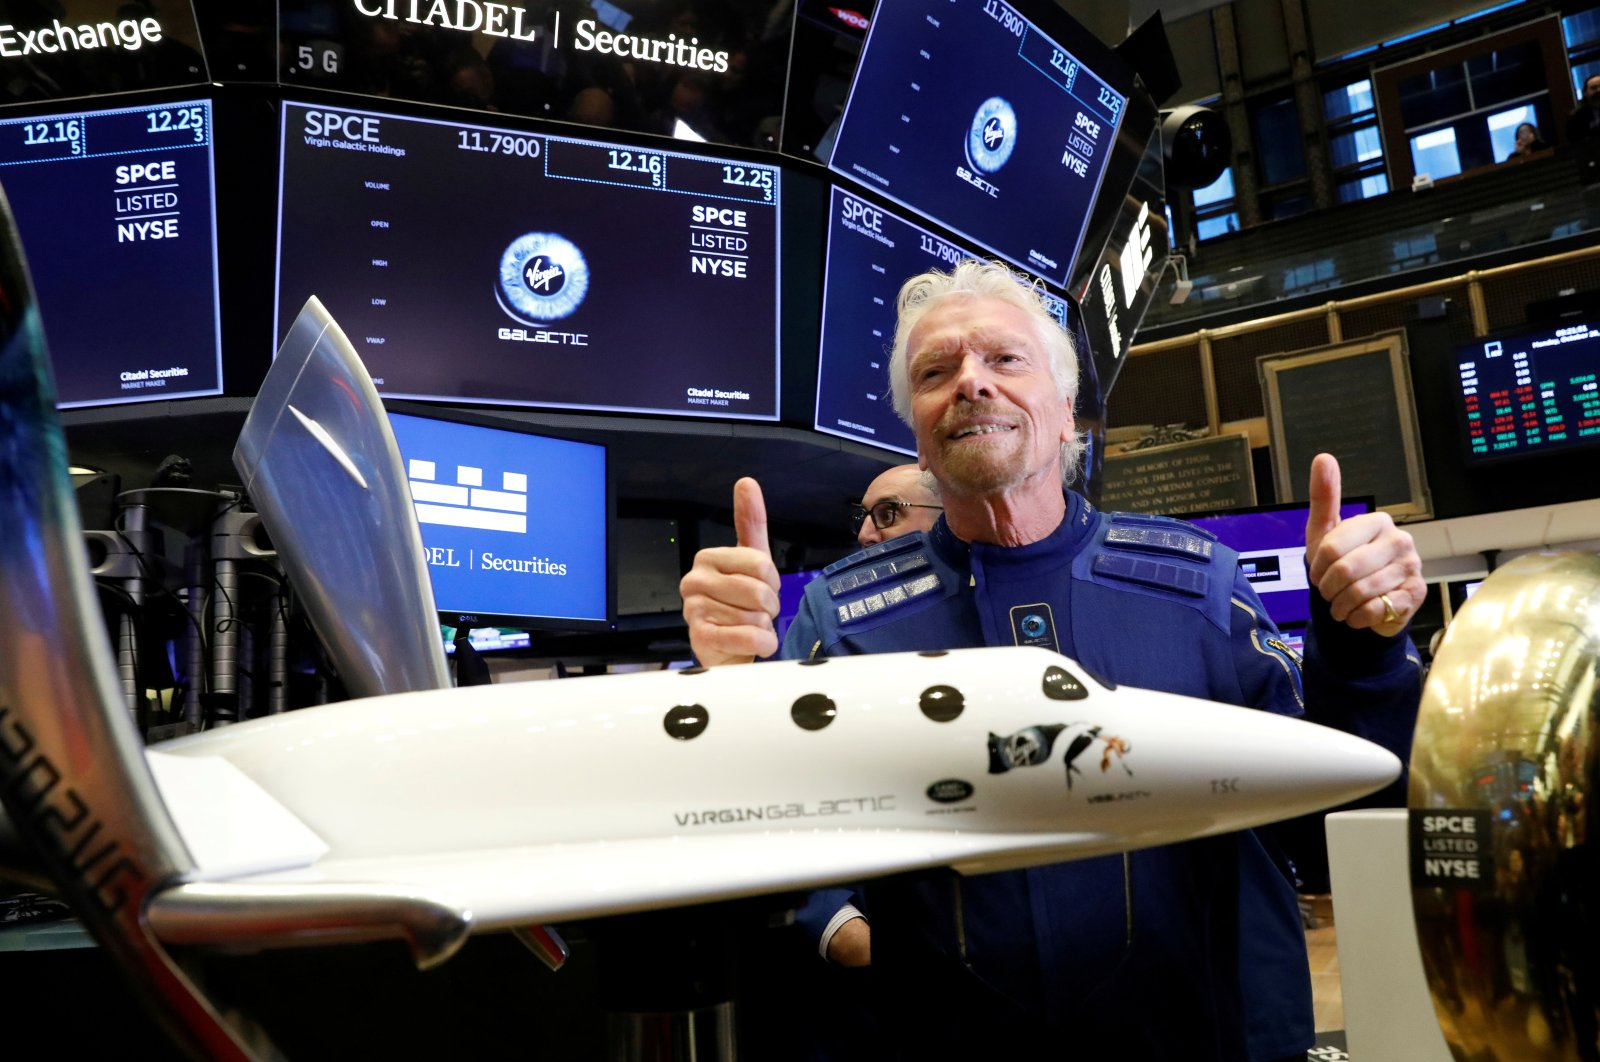 Sir Richard Branson poses on the floor of the New York Stock Exchange (NYSE) ahead of Virgin Galactic (SPCE) trading in New York, U.S., Oct. 28, 2019. (Reuters Photo)